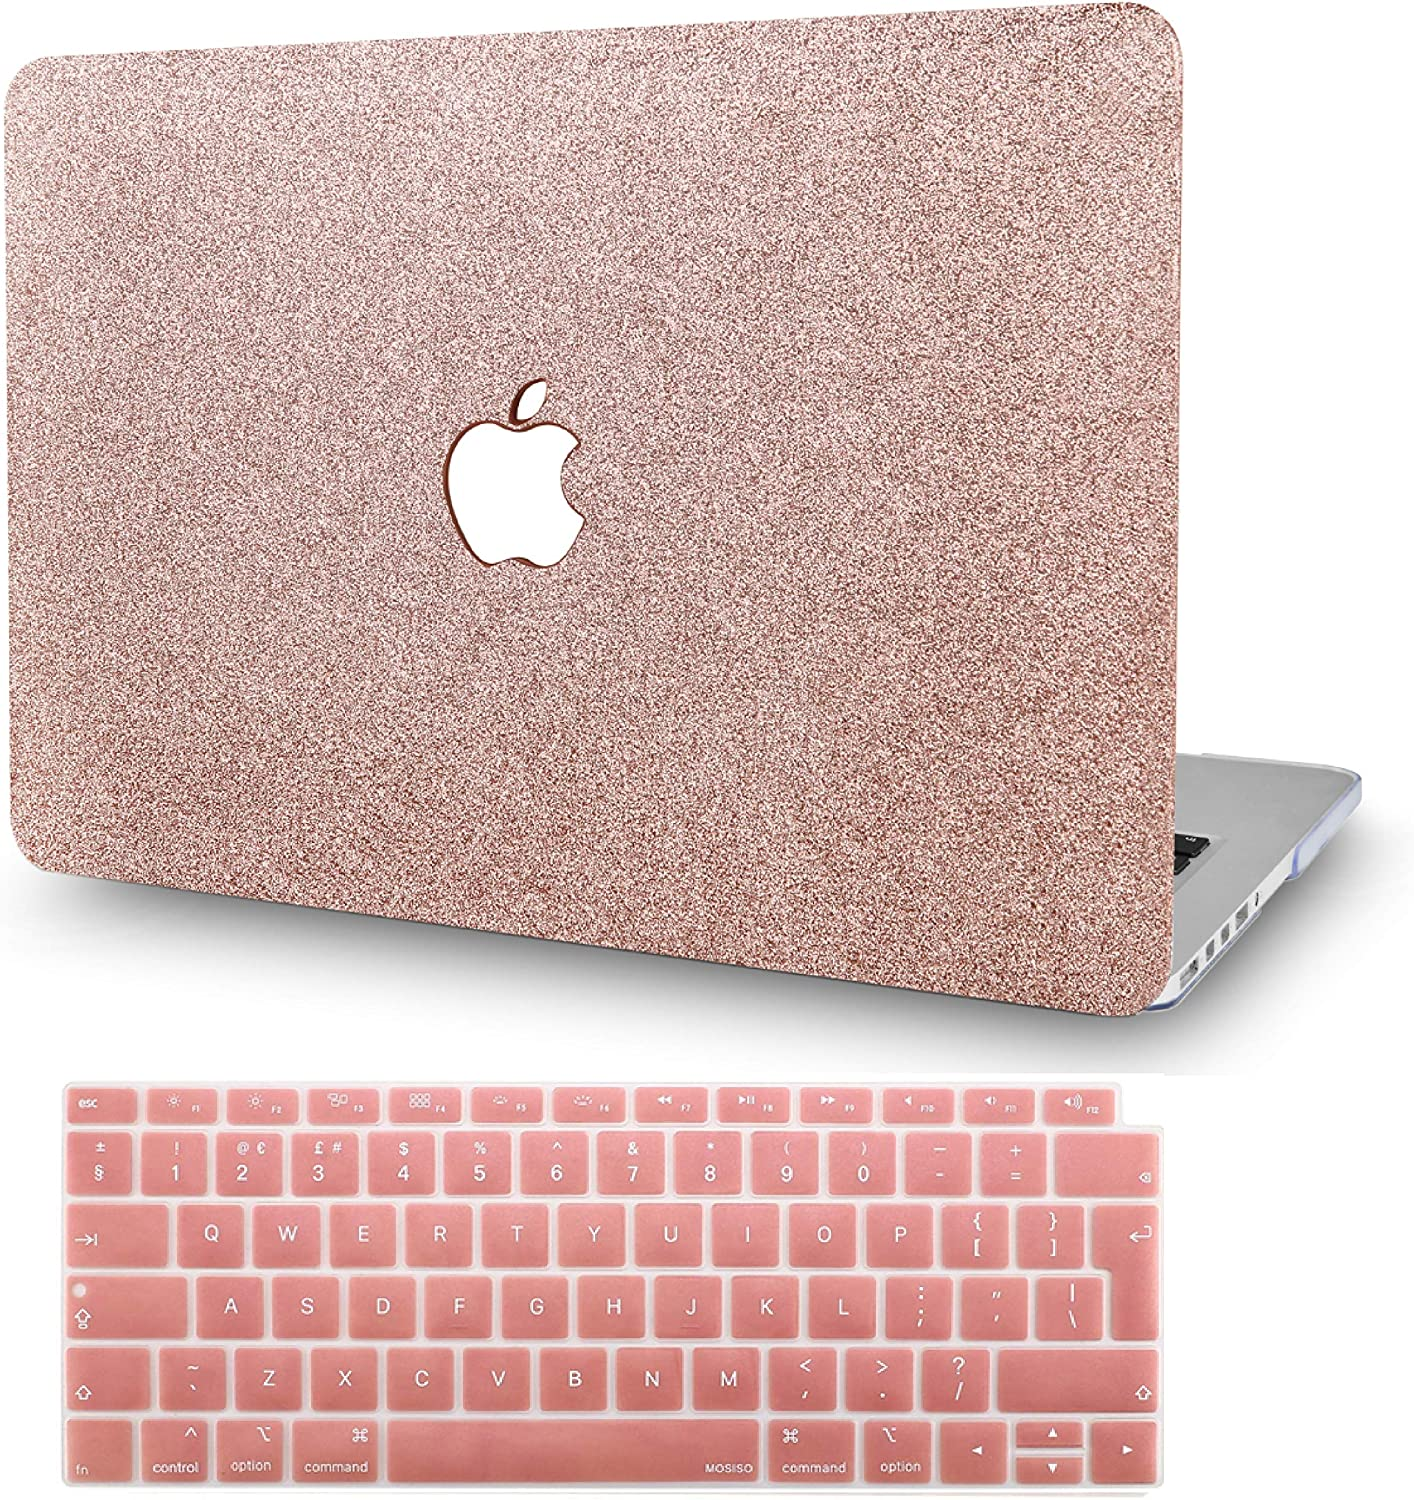 "KECC Laptop Case for MacBook Air 13"" Retina (2020/2019/2018, Touch ID) w/Keyboard Cover Plastic Hard Shell Case A1932 2 in 1 Bundle (Rose Gold Sparkling)"